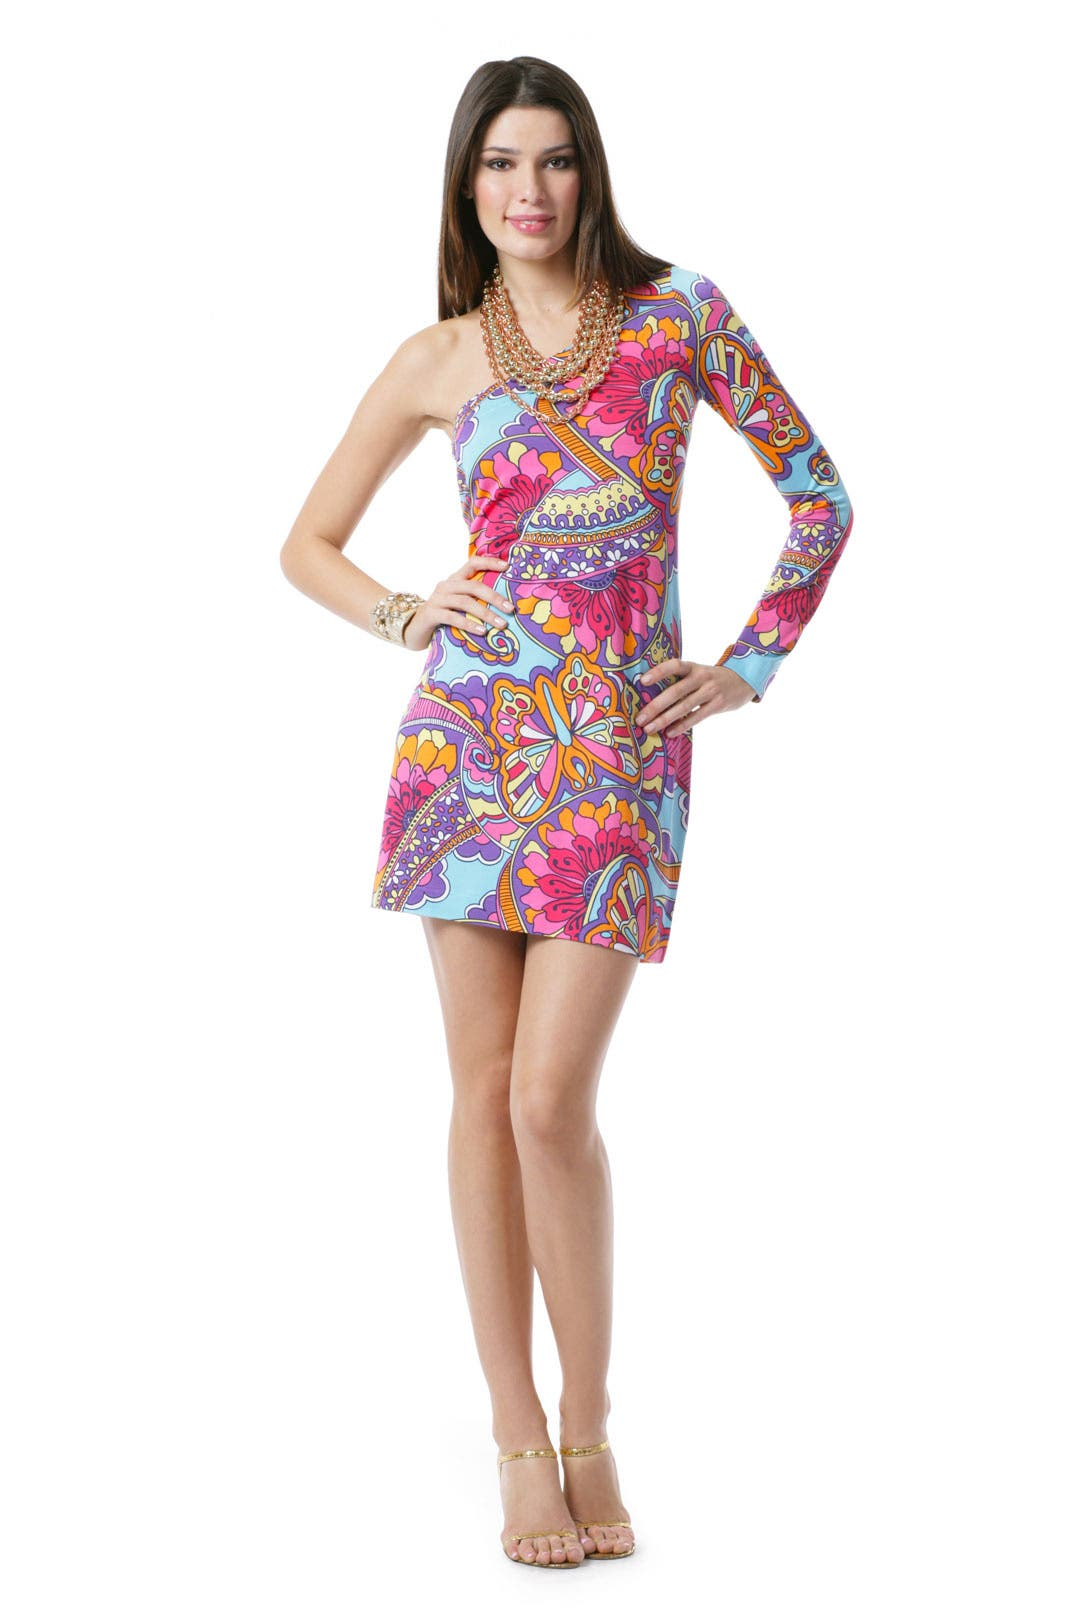 Go Go Girl Dress by Lilly Pulitzer